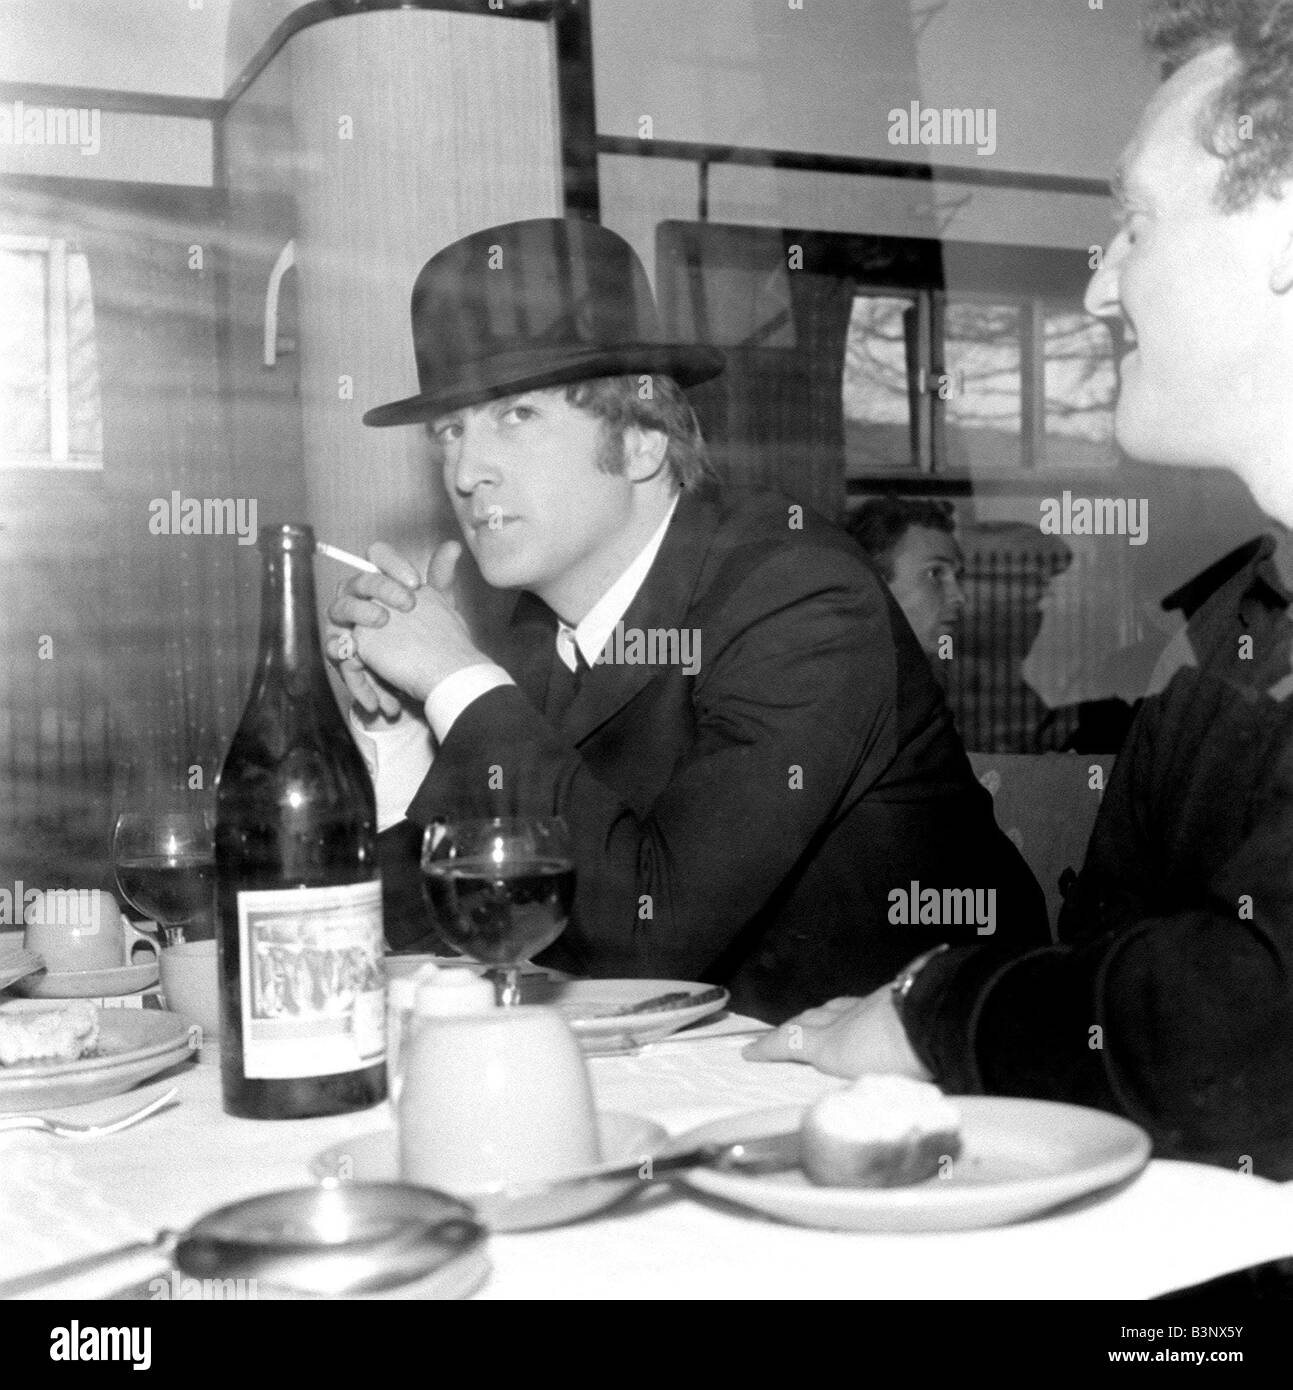 The Beatles March 1964 John Lennon Wearing A Bowler Hat